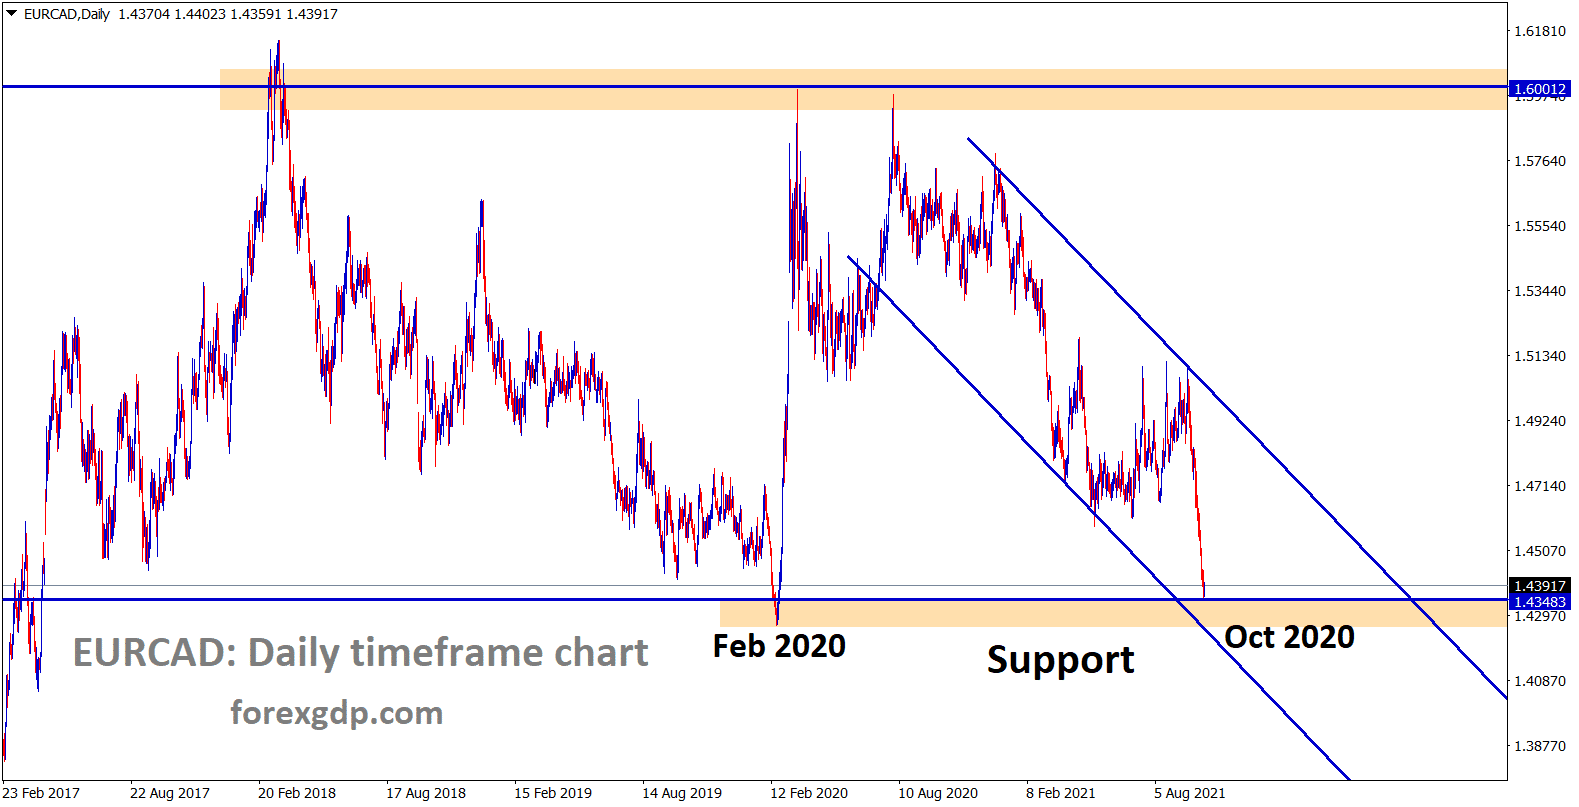 EURCAD is near to the major support area after a long time wait for reversal or breakout